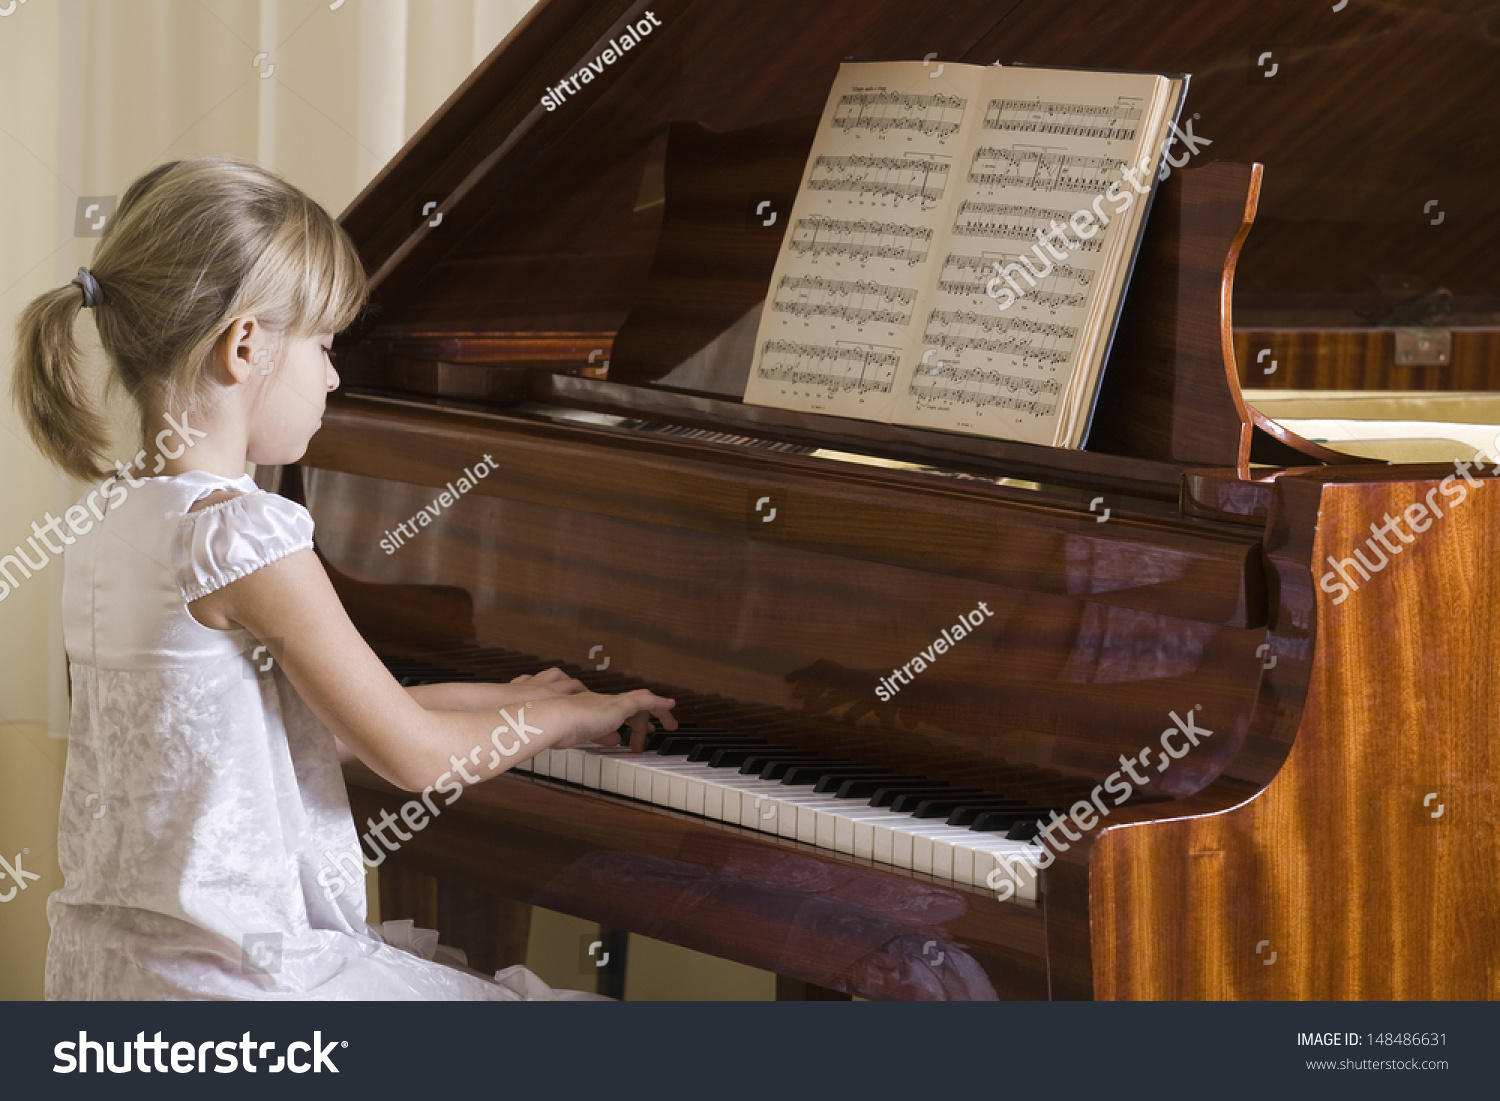 playing the piano essay Get an answer for 'passion for playing the piano (one page, 500 words) ' and find homework help for other arts questions at enotes you need to help the teacher understand why you love the piano or what attracts your passion to express yourself through the piano to play well good luck with your answers and essay.